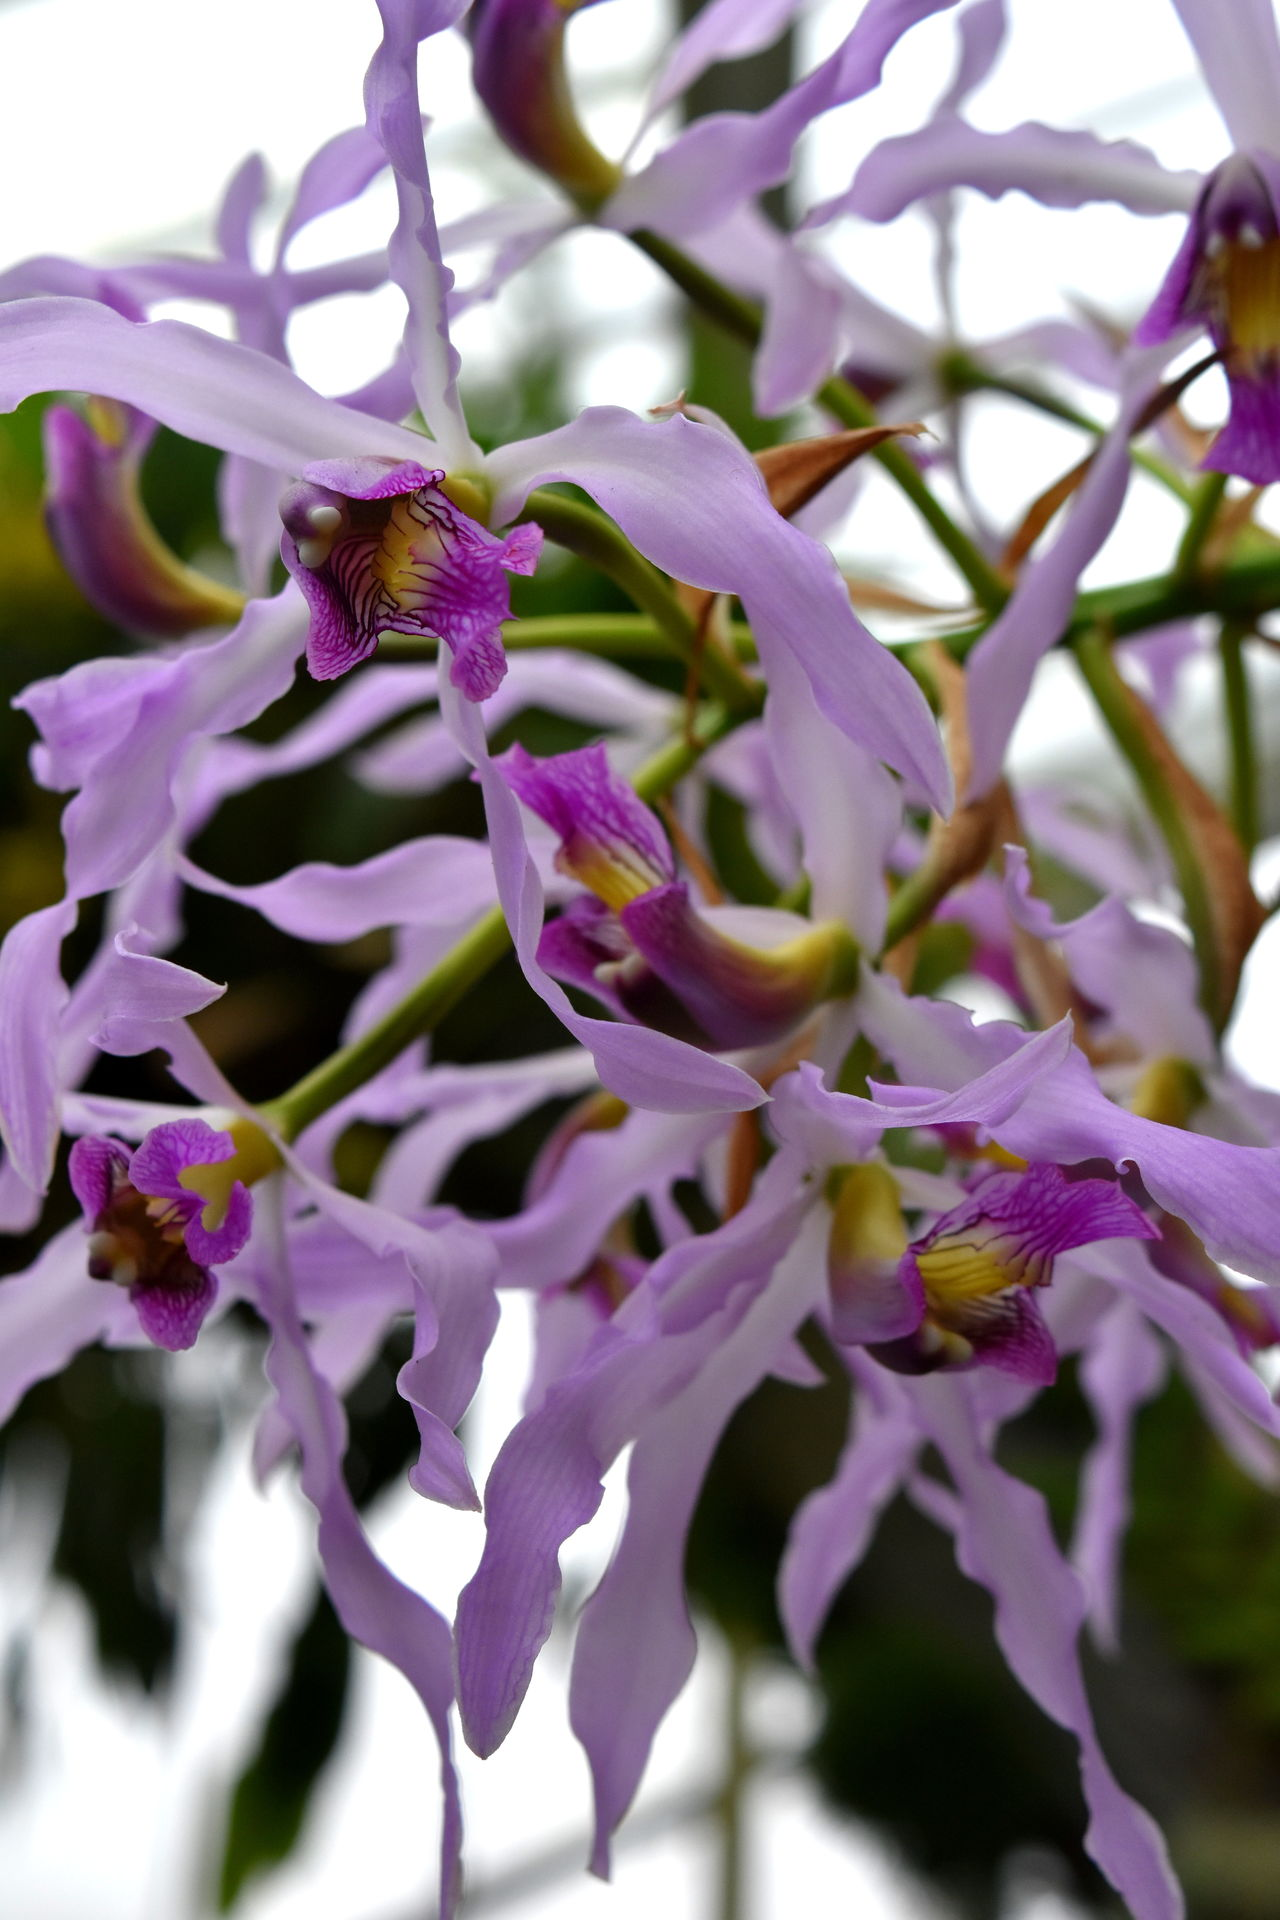 Beauty In Nature Close-up Flower Flower Head Fragility Freshness Growth Nature No People Orchid Orchid Blossoms Orchid Flower Orchids Petal Purple